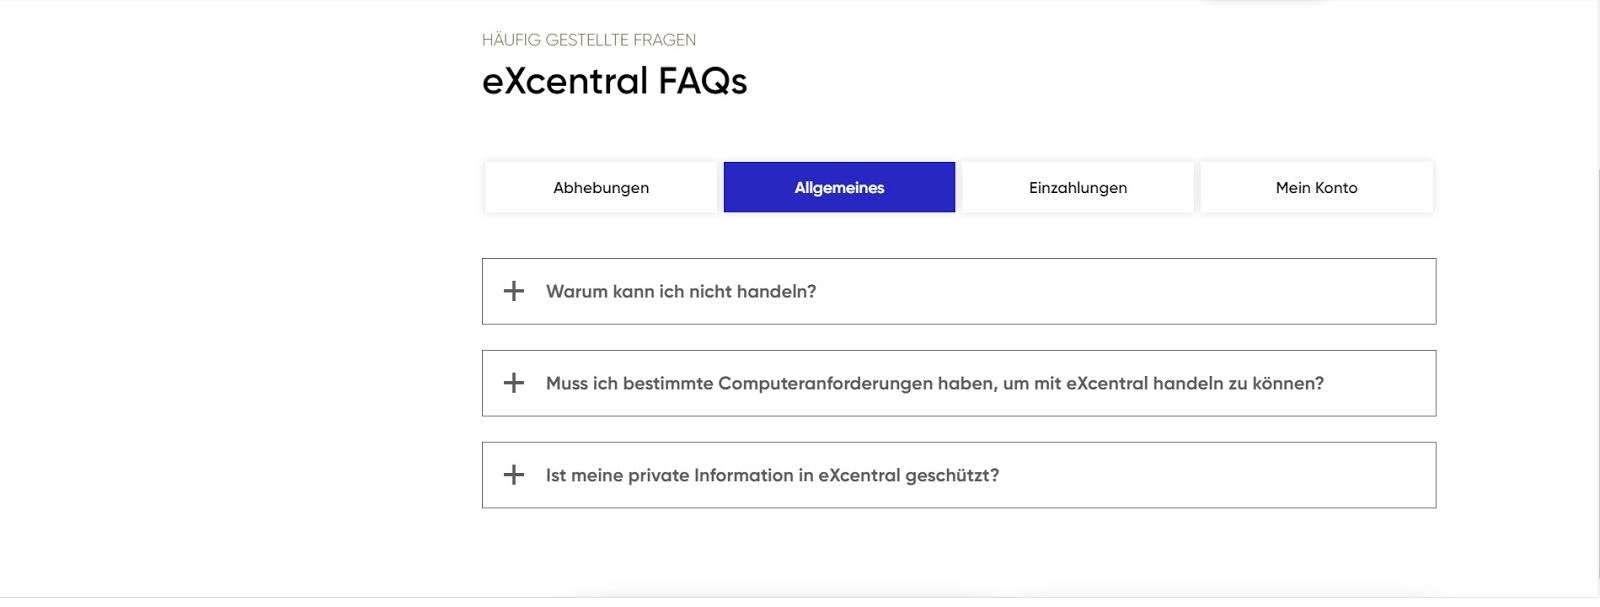 ExCentral customer service and website FAQ overview